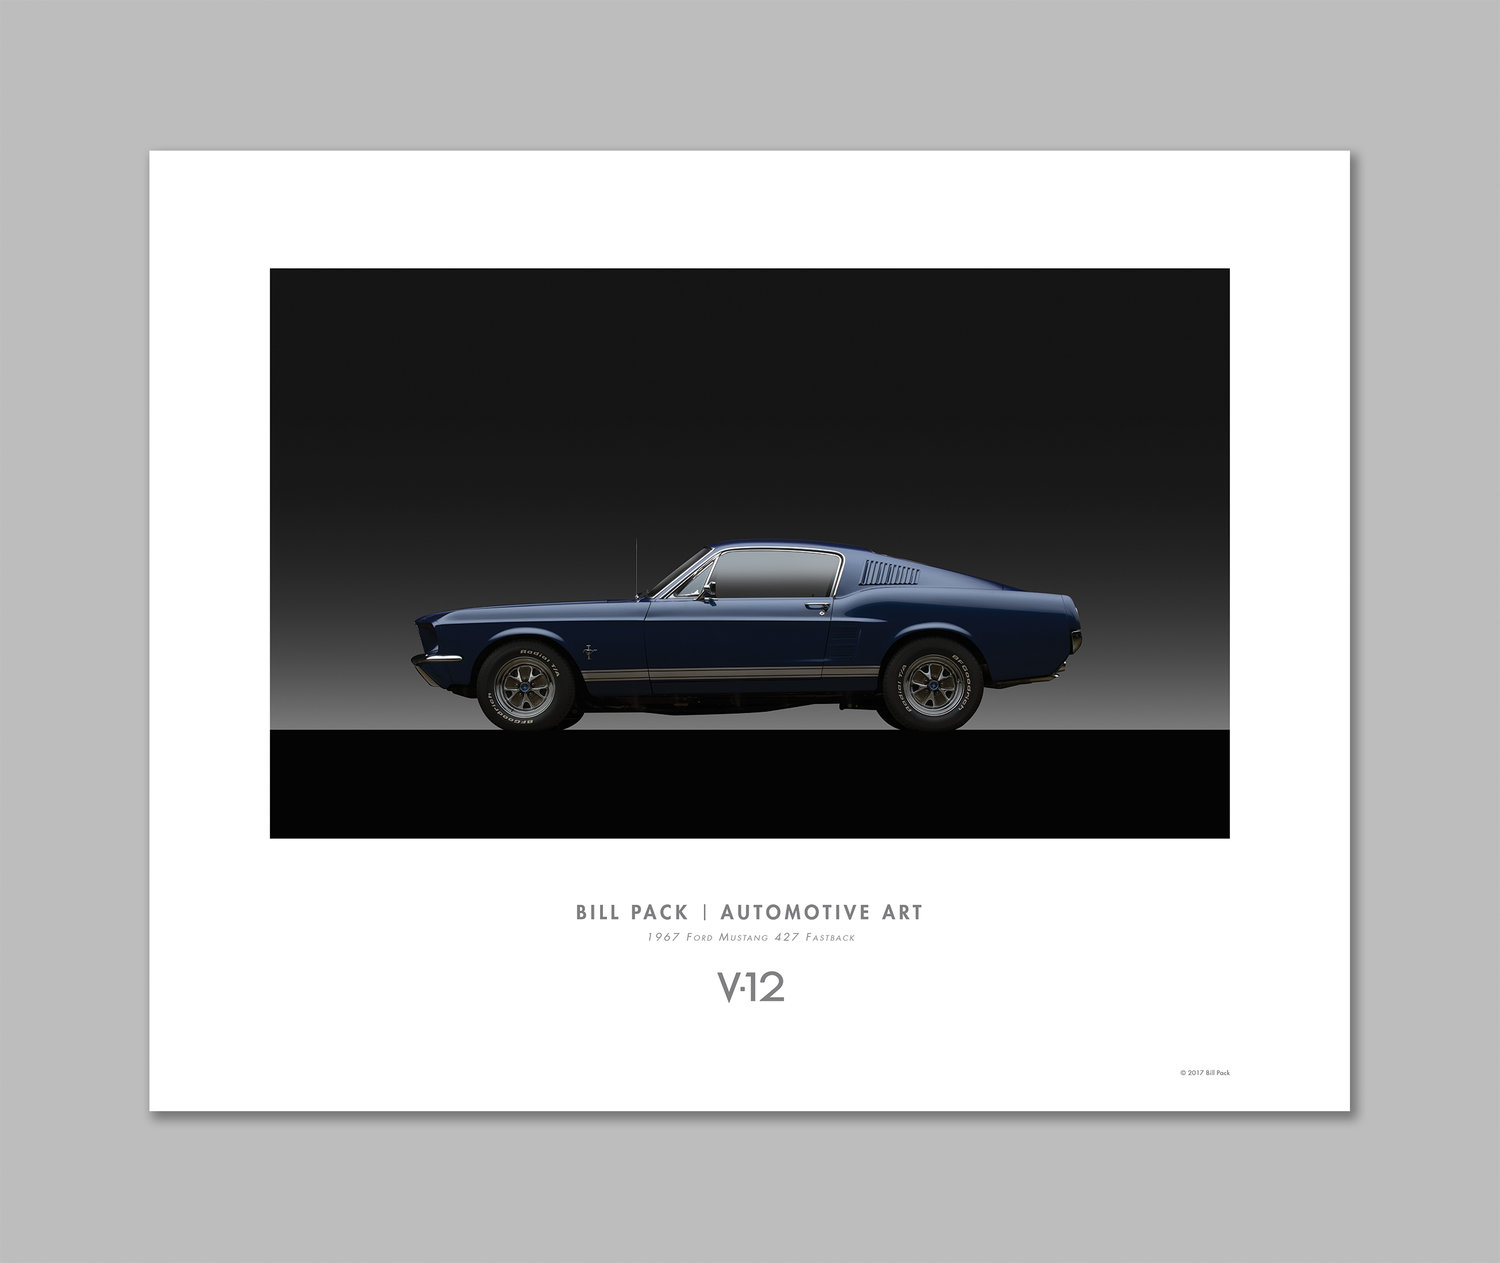 1967 ford mustang 427 fastback poster v12 bill pack automotive arts